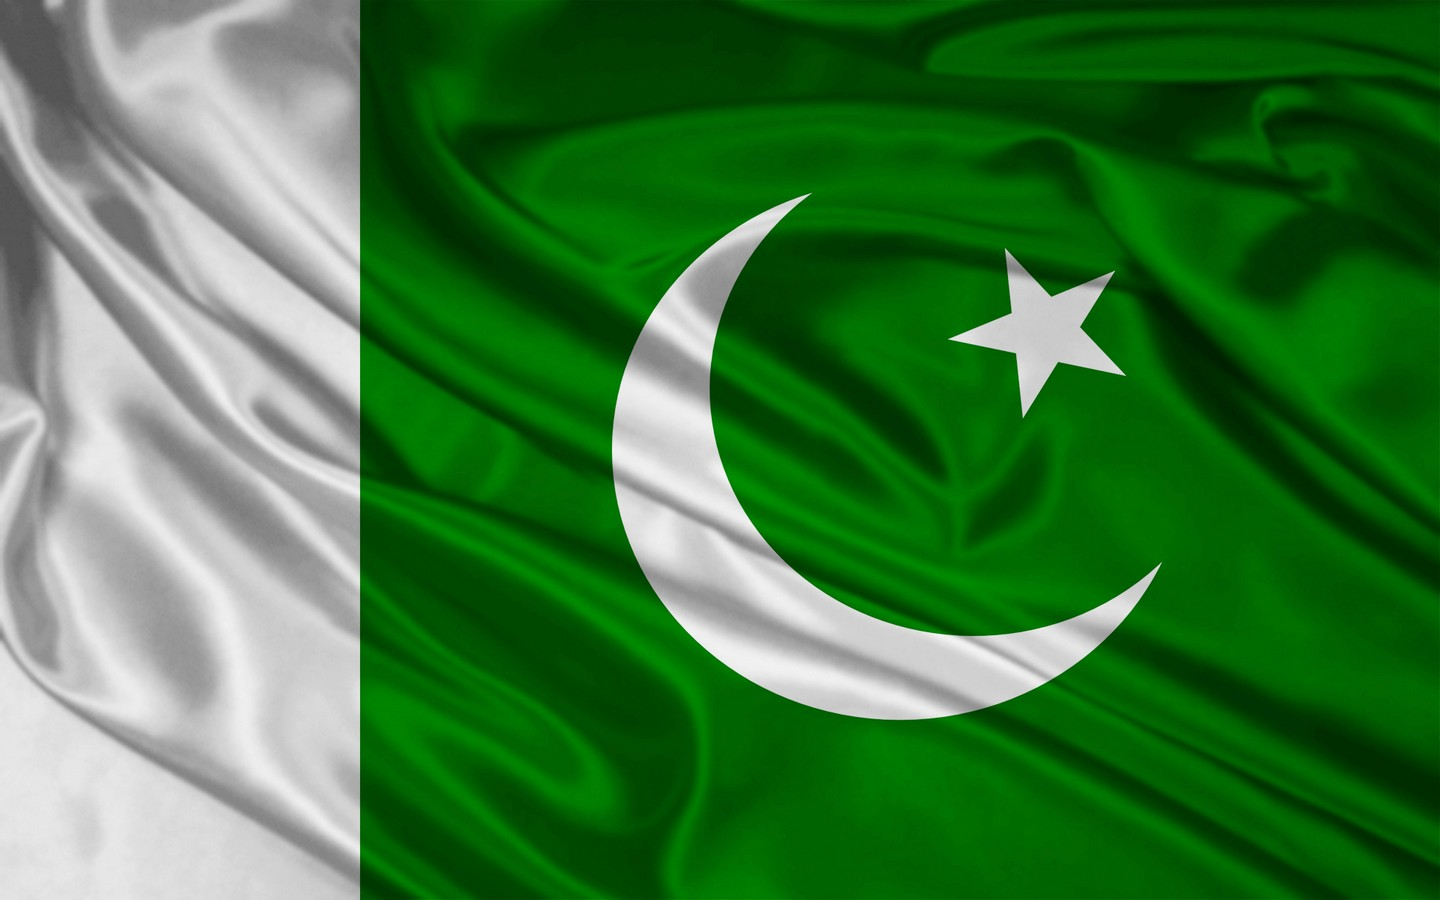 http://2.bp.blogspot.com/-sFP8wiTCgKk/TdWNhCX9FZI/AAAAAAAABE4/MxfYuRsEguU/s1600/Wallpapers+Flag+of+Pakistan+Pakistani+Flag+Graphics+%25289%2529.jpg